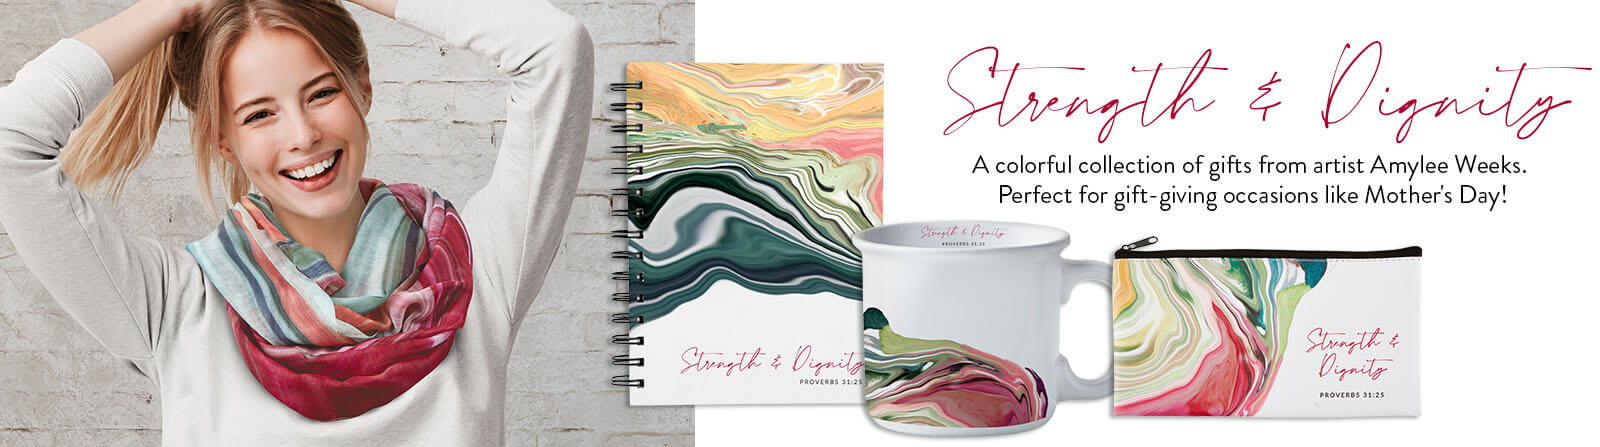 Strength & Dignity - A colorful collection of gifts from artist Amylee Weeks. Perfect for gift-giving occasions like Mother's Day!